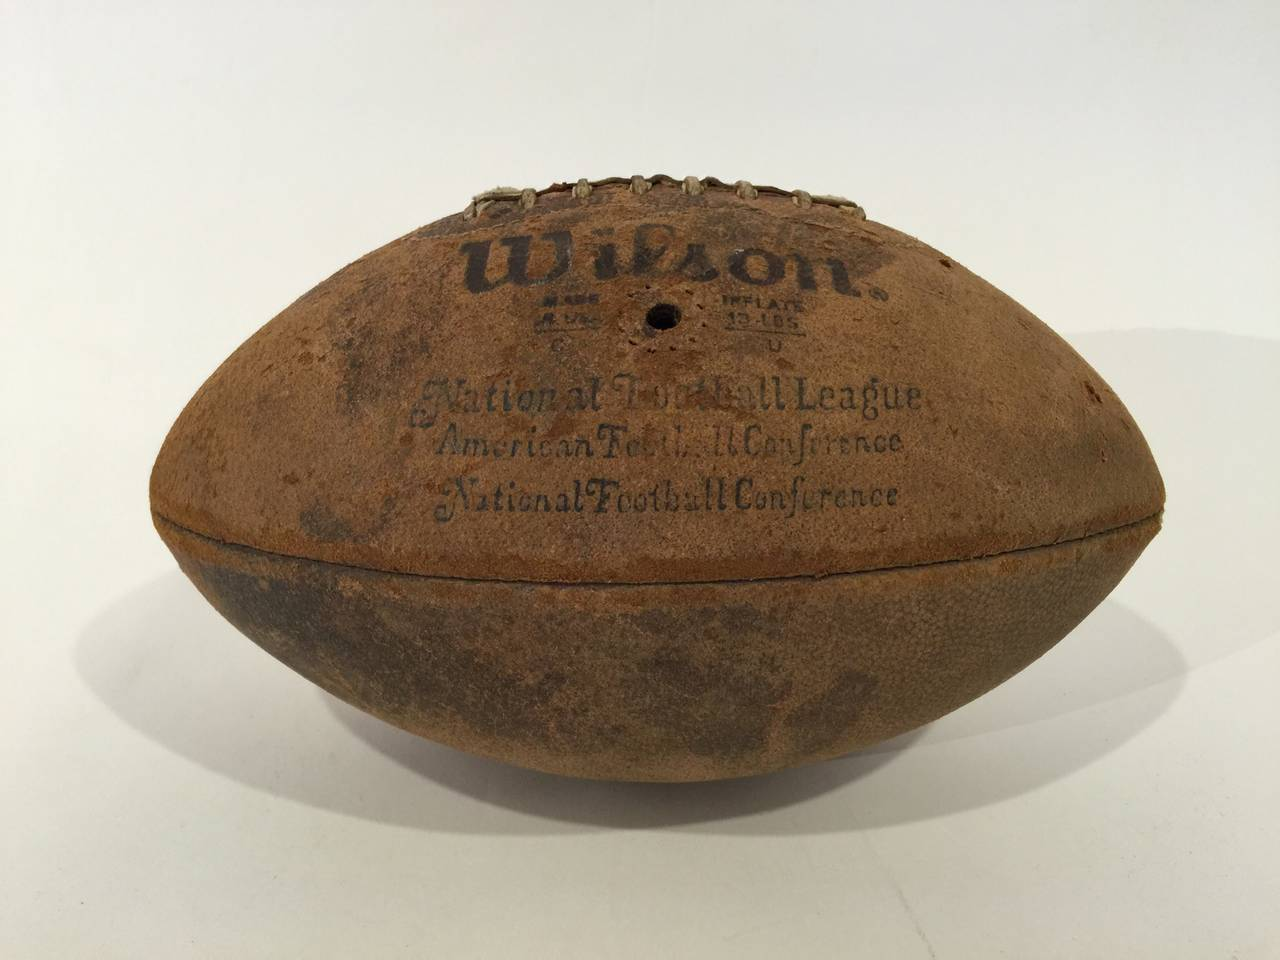 Vintage Pigskin Football by Wilson 3